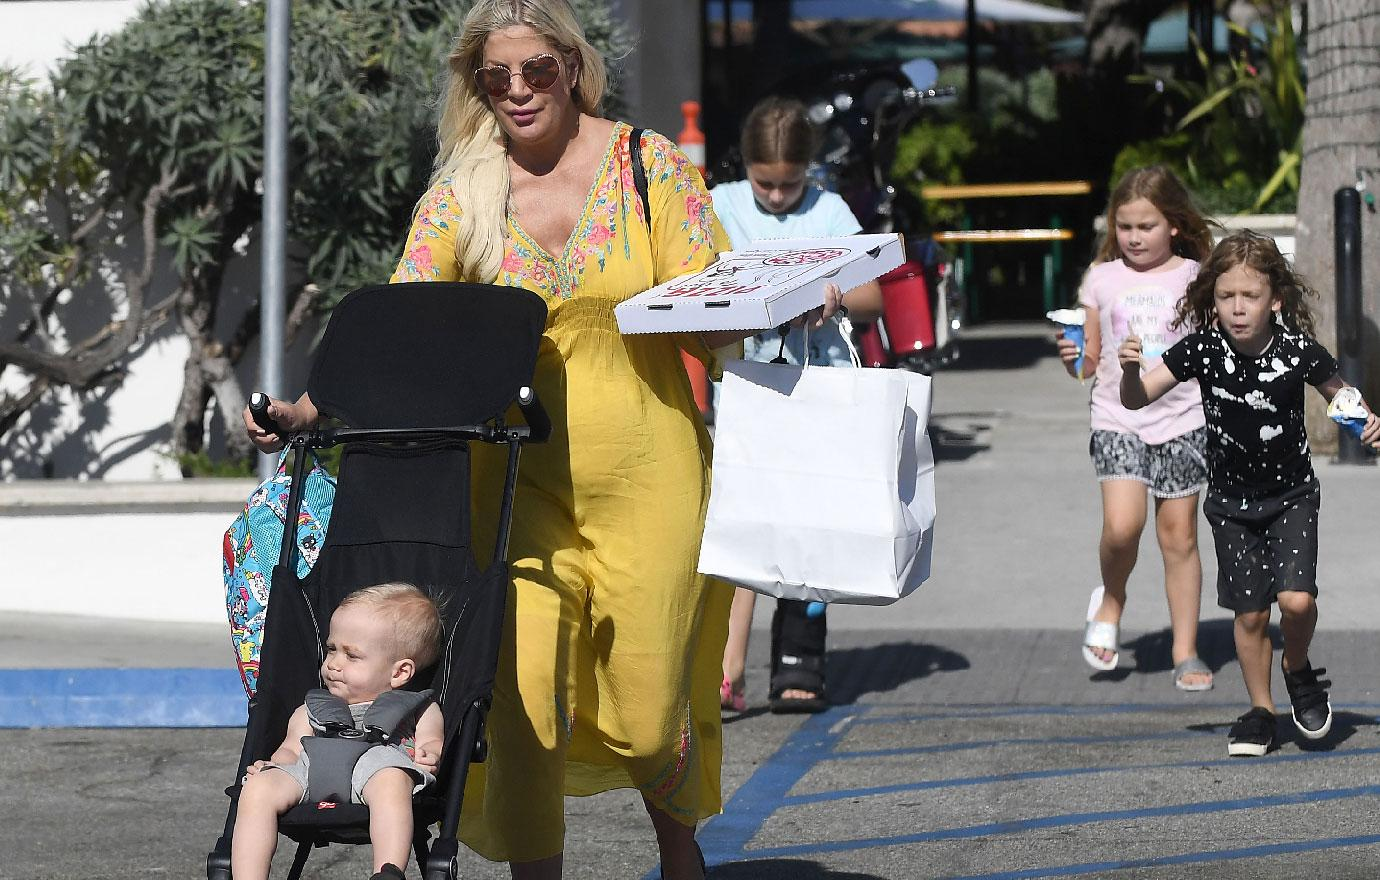 Tori Spelling Takes Kids For Pizza And Ice Cream In Malibu